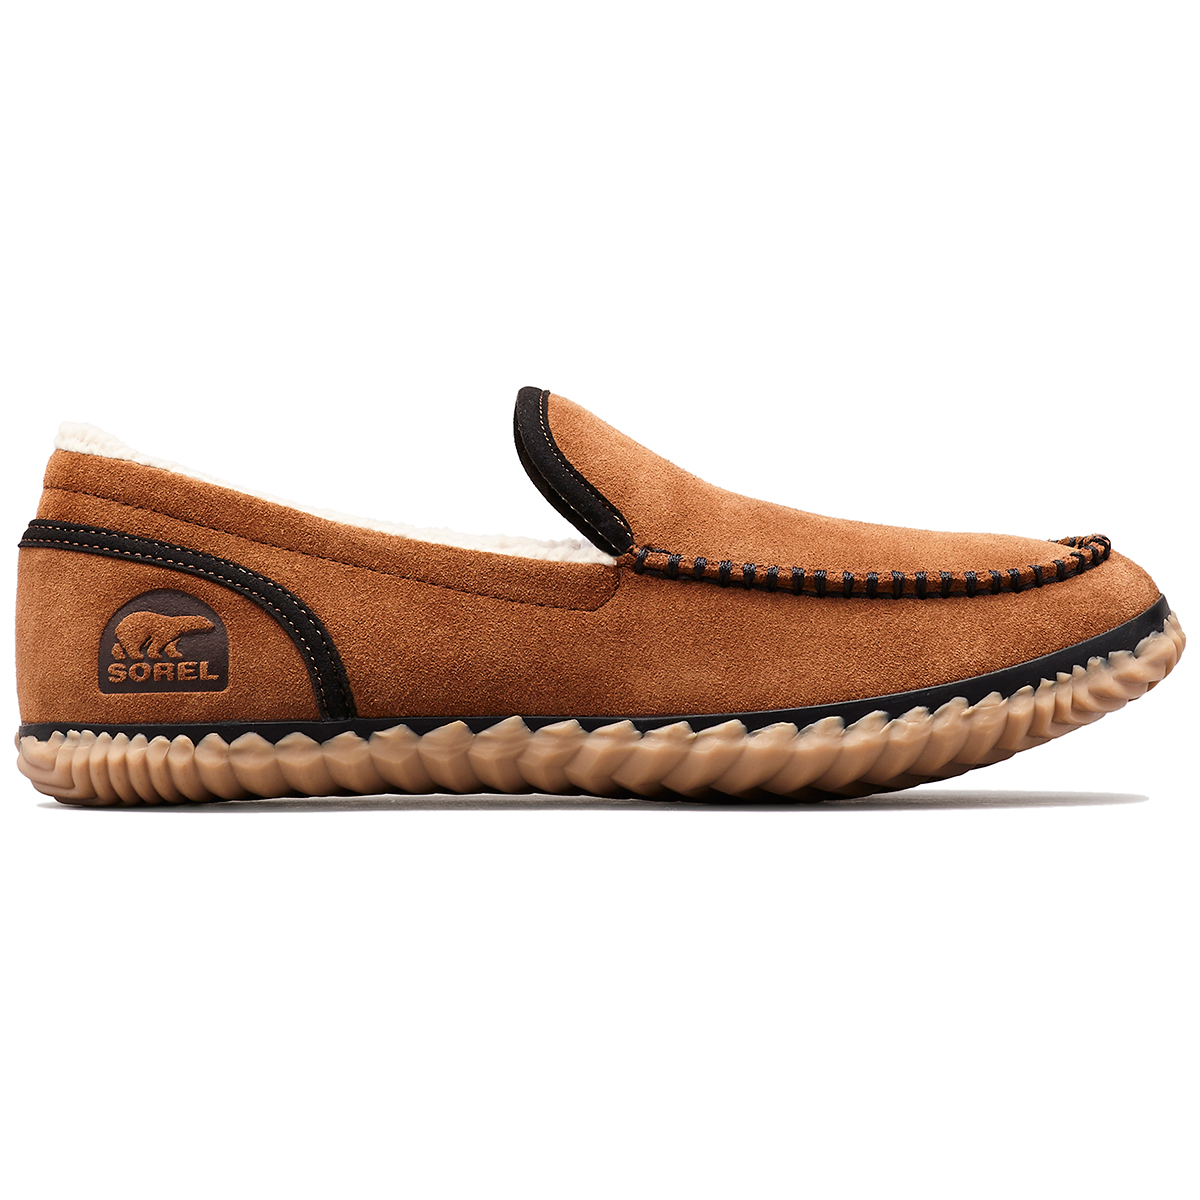 Sorel Men's Sorel Dude Moc Slippers - Brown, 13